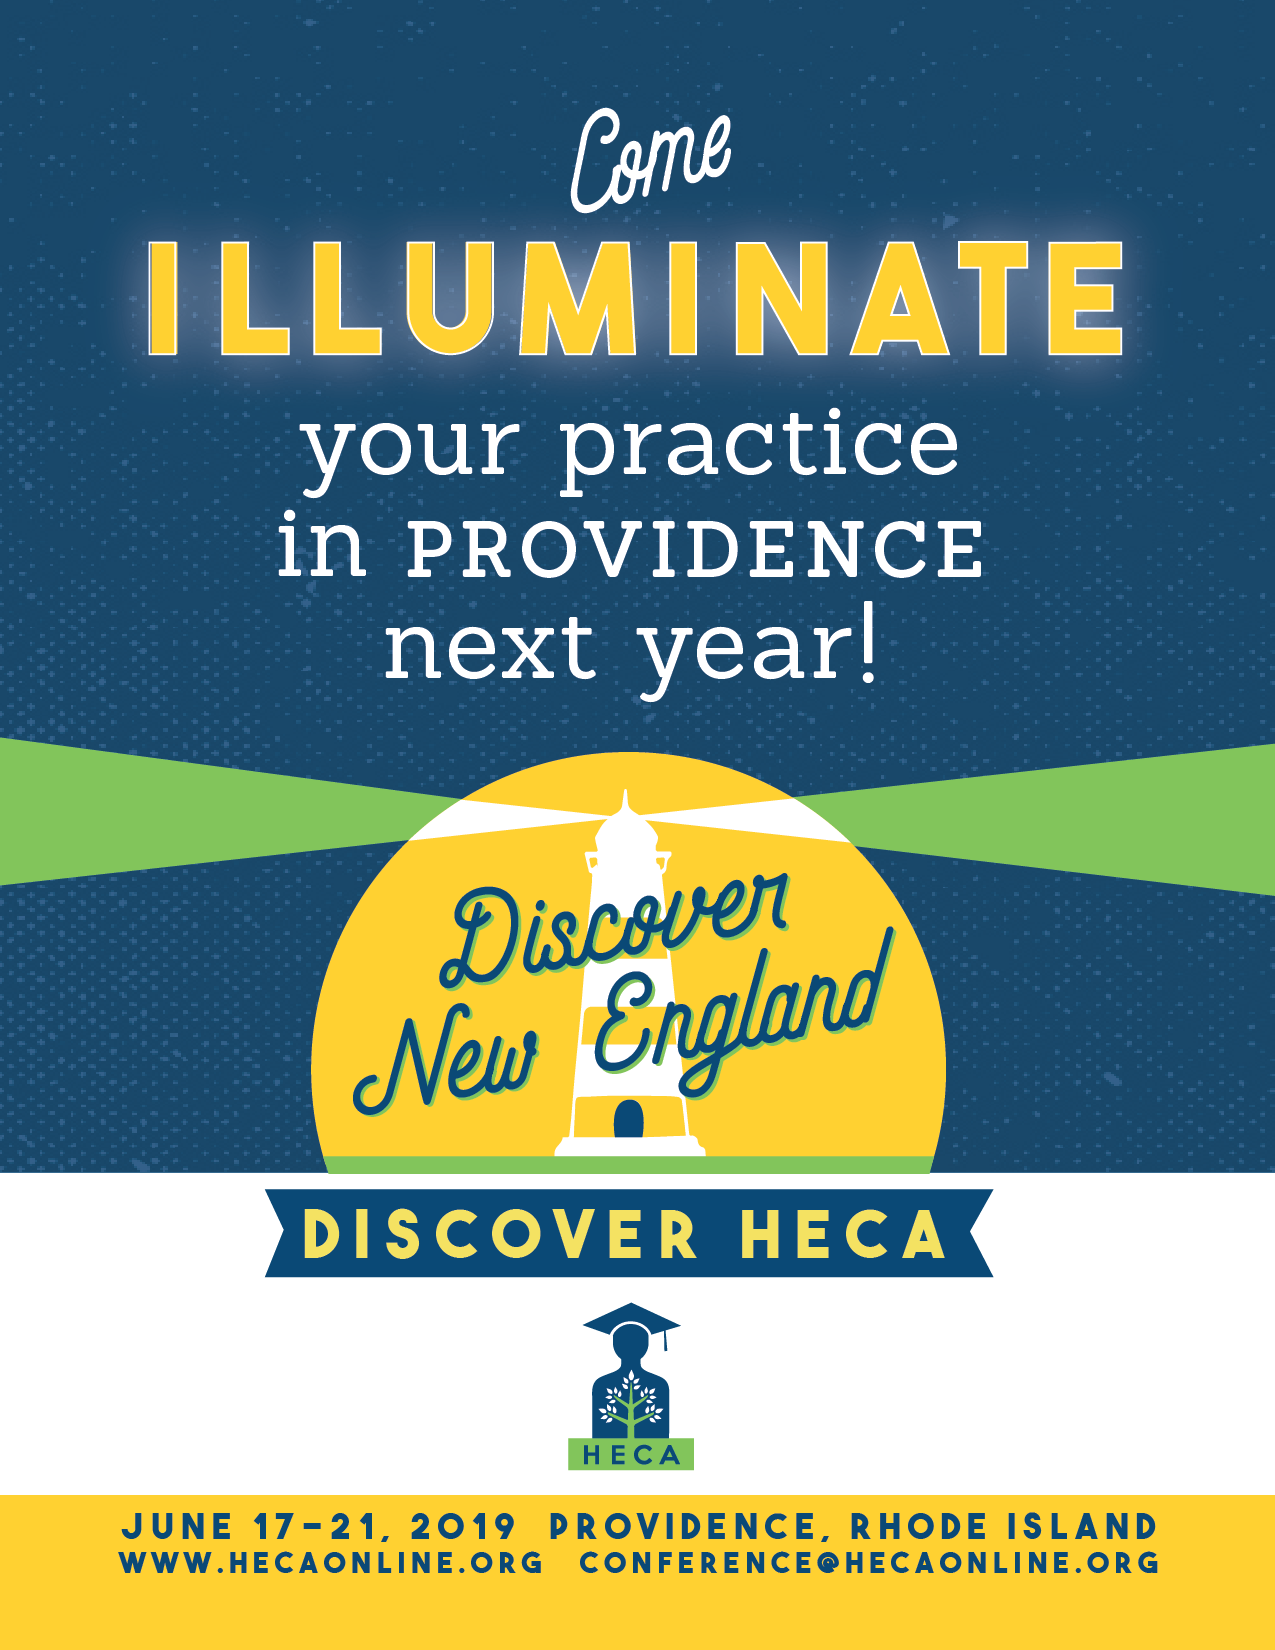 HECA_Providence_catalog_ad2-01.png